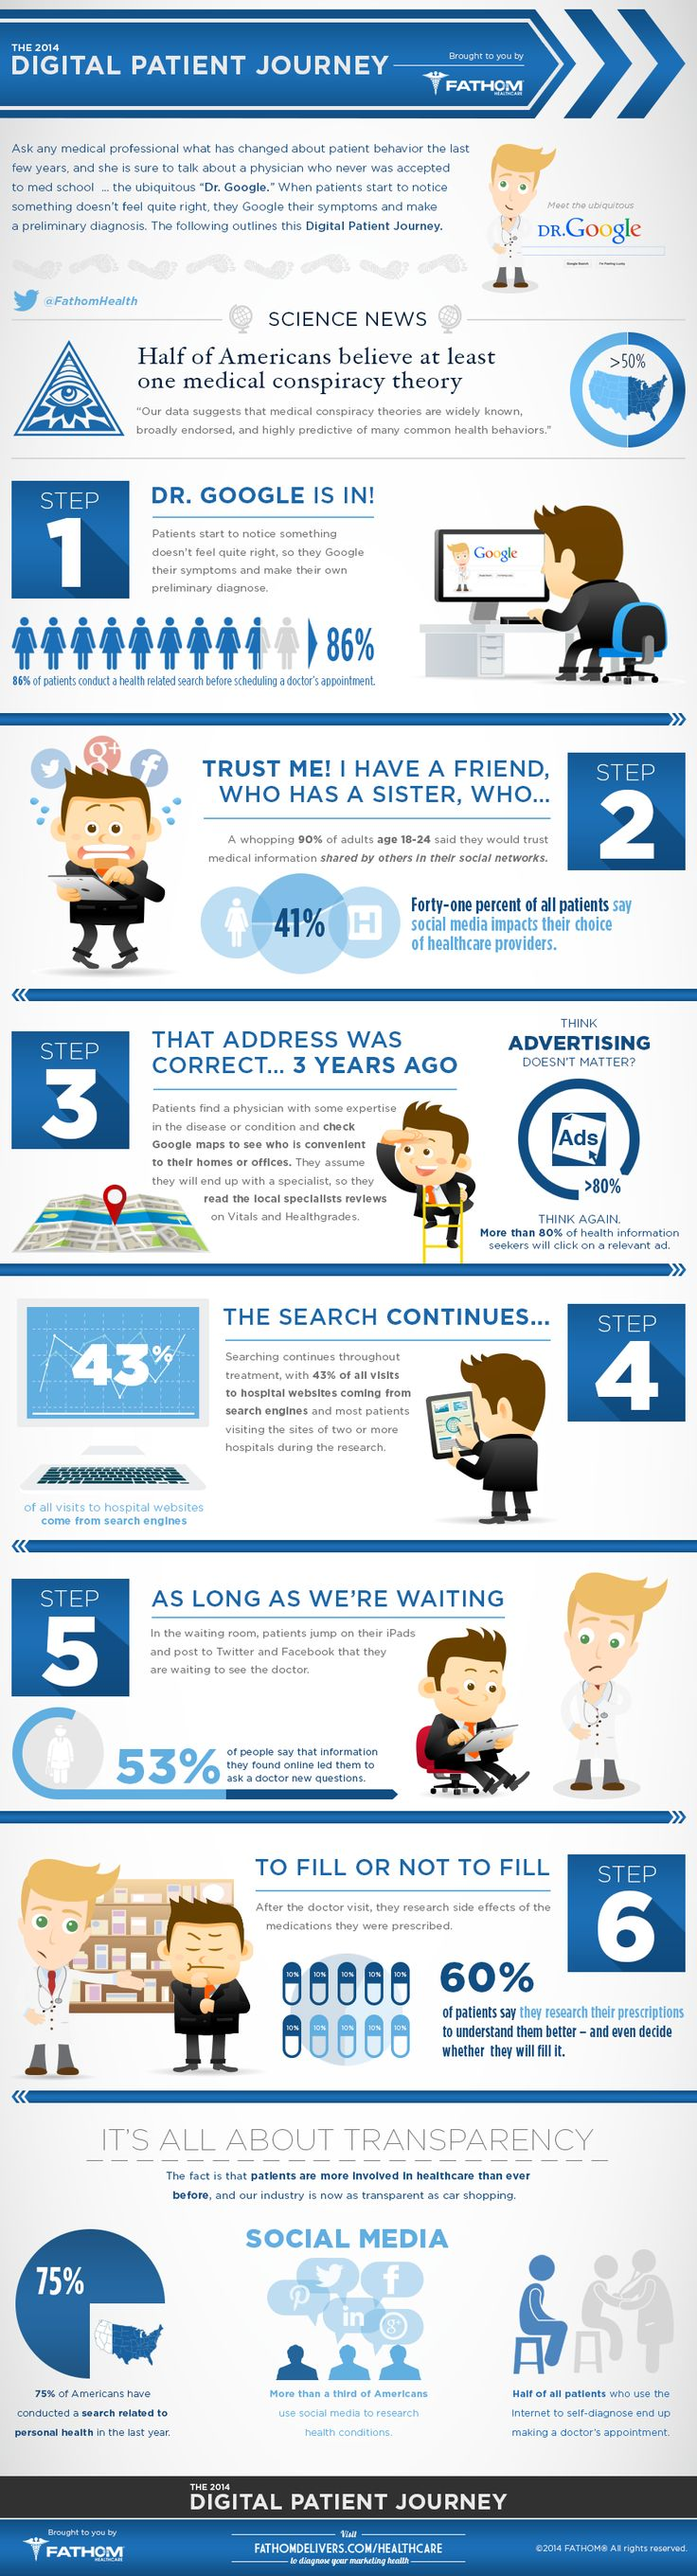 #Infographic: The digital patient journey. An insight into their digital behaviours